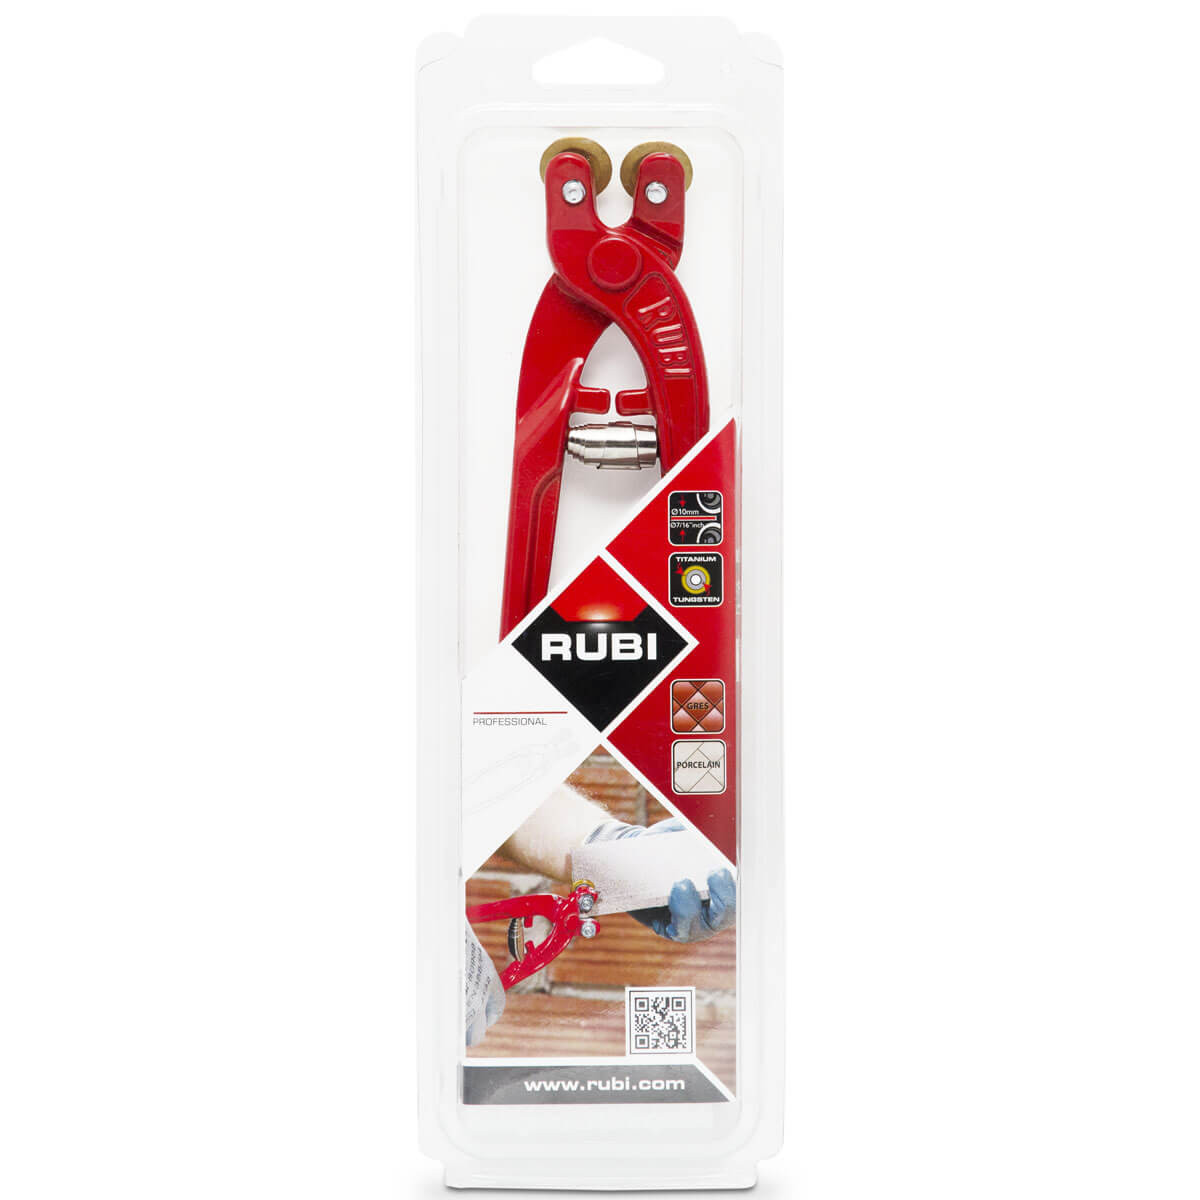 Rubi Porcelain ceramic Tile Nipper